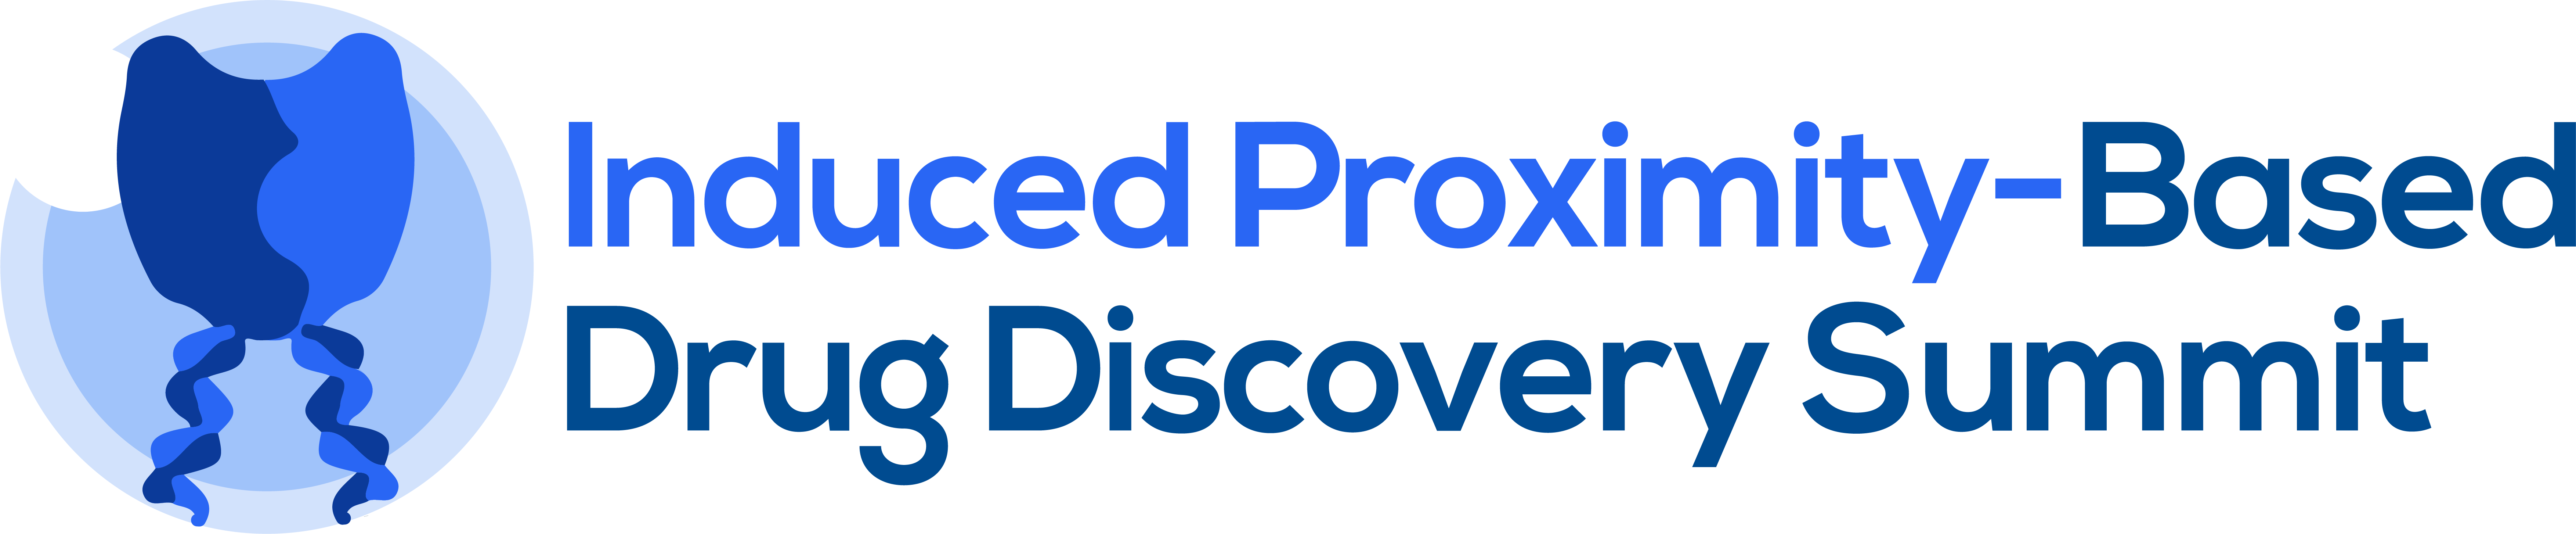 21362 - Induced Proximity- Based Drug Discovery Summit